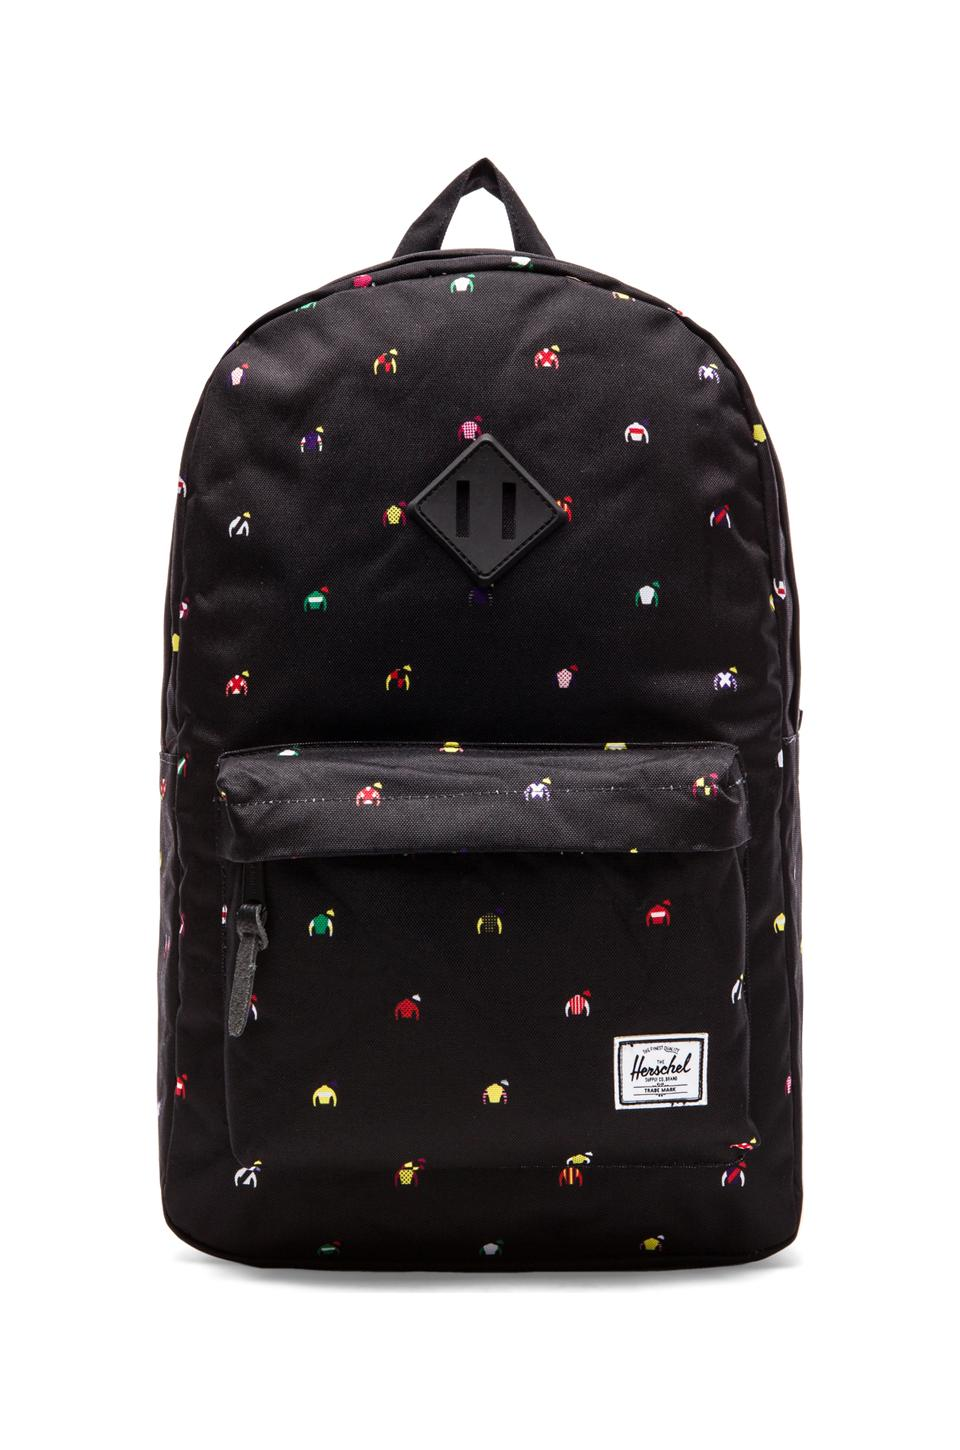 Herschel Supply Co. Limited Release Heritage Backpack in Jockey Jersey